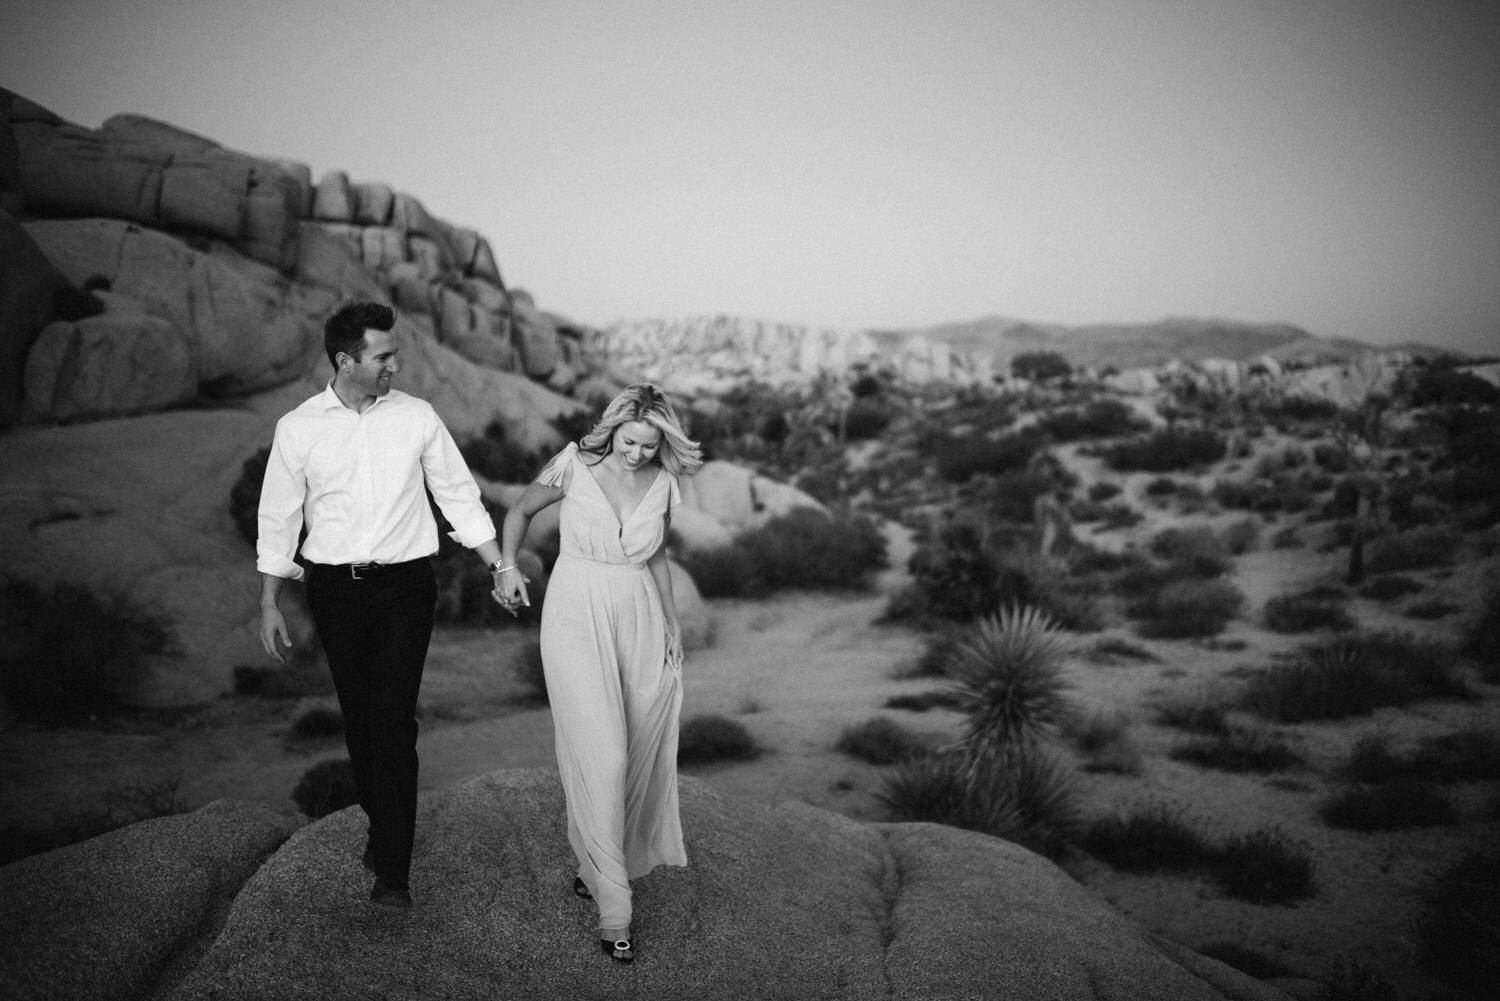 Couple walking through desert during photography session